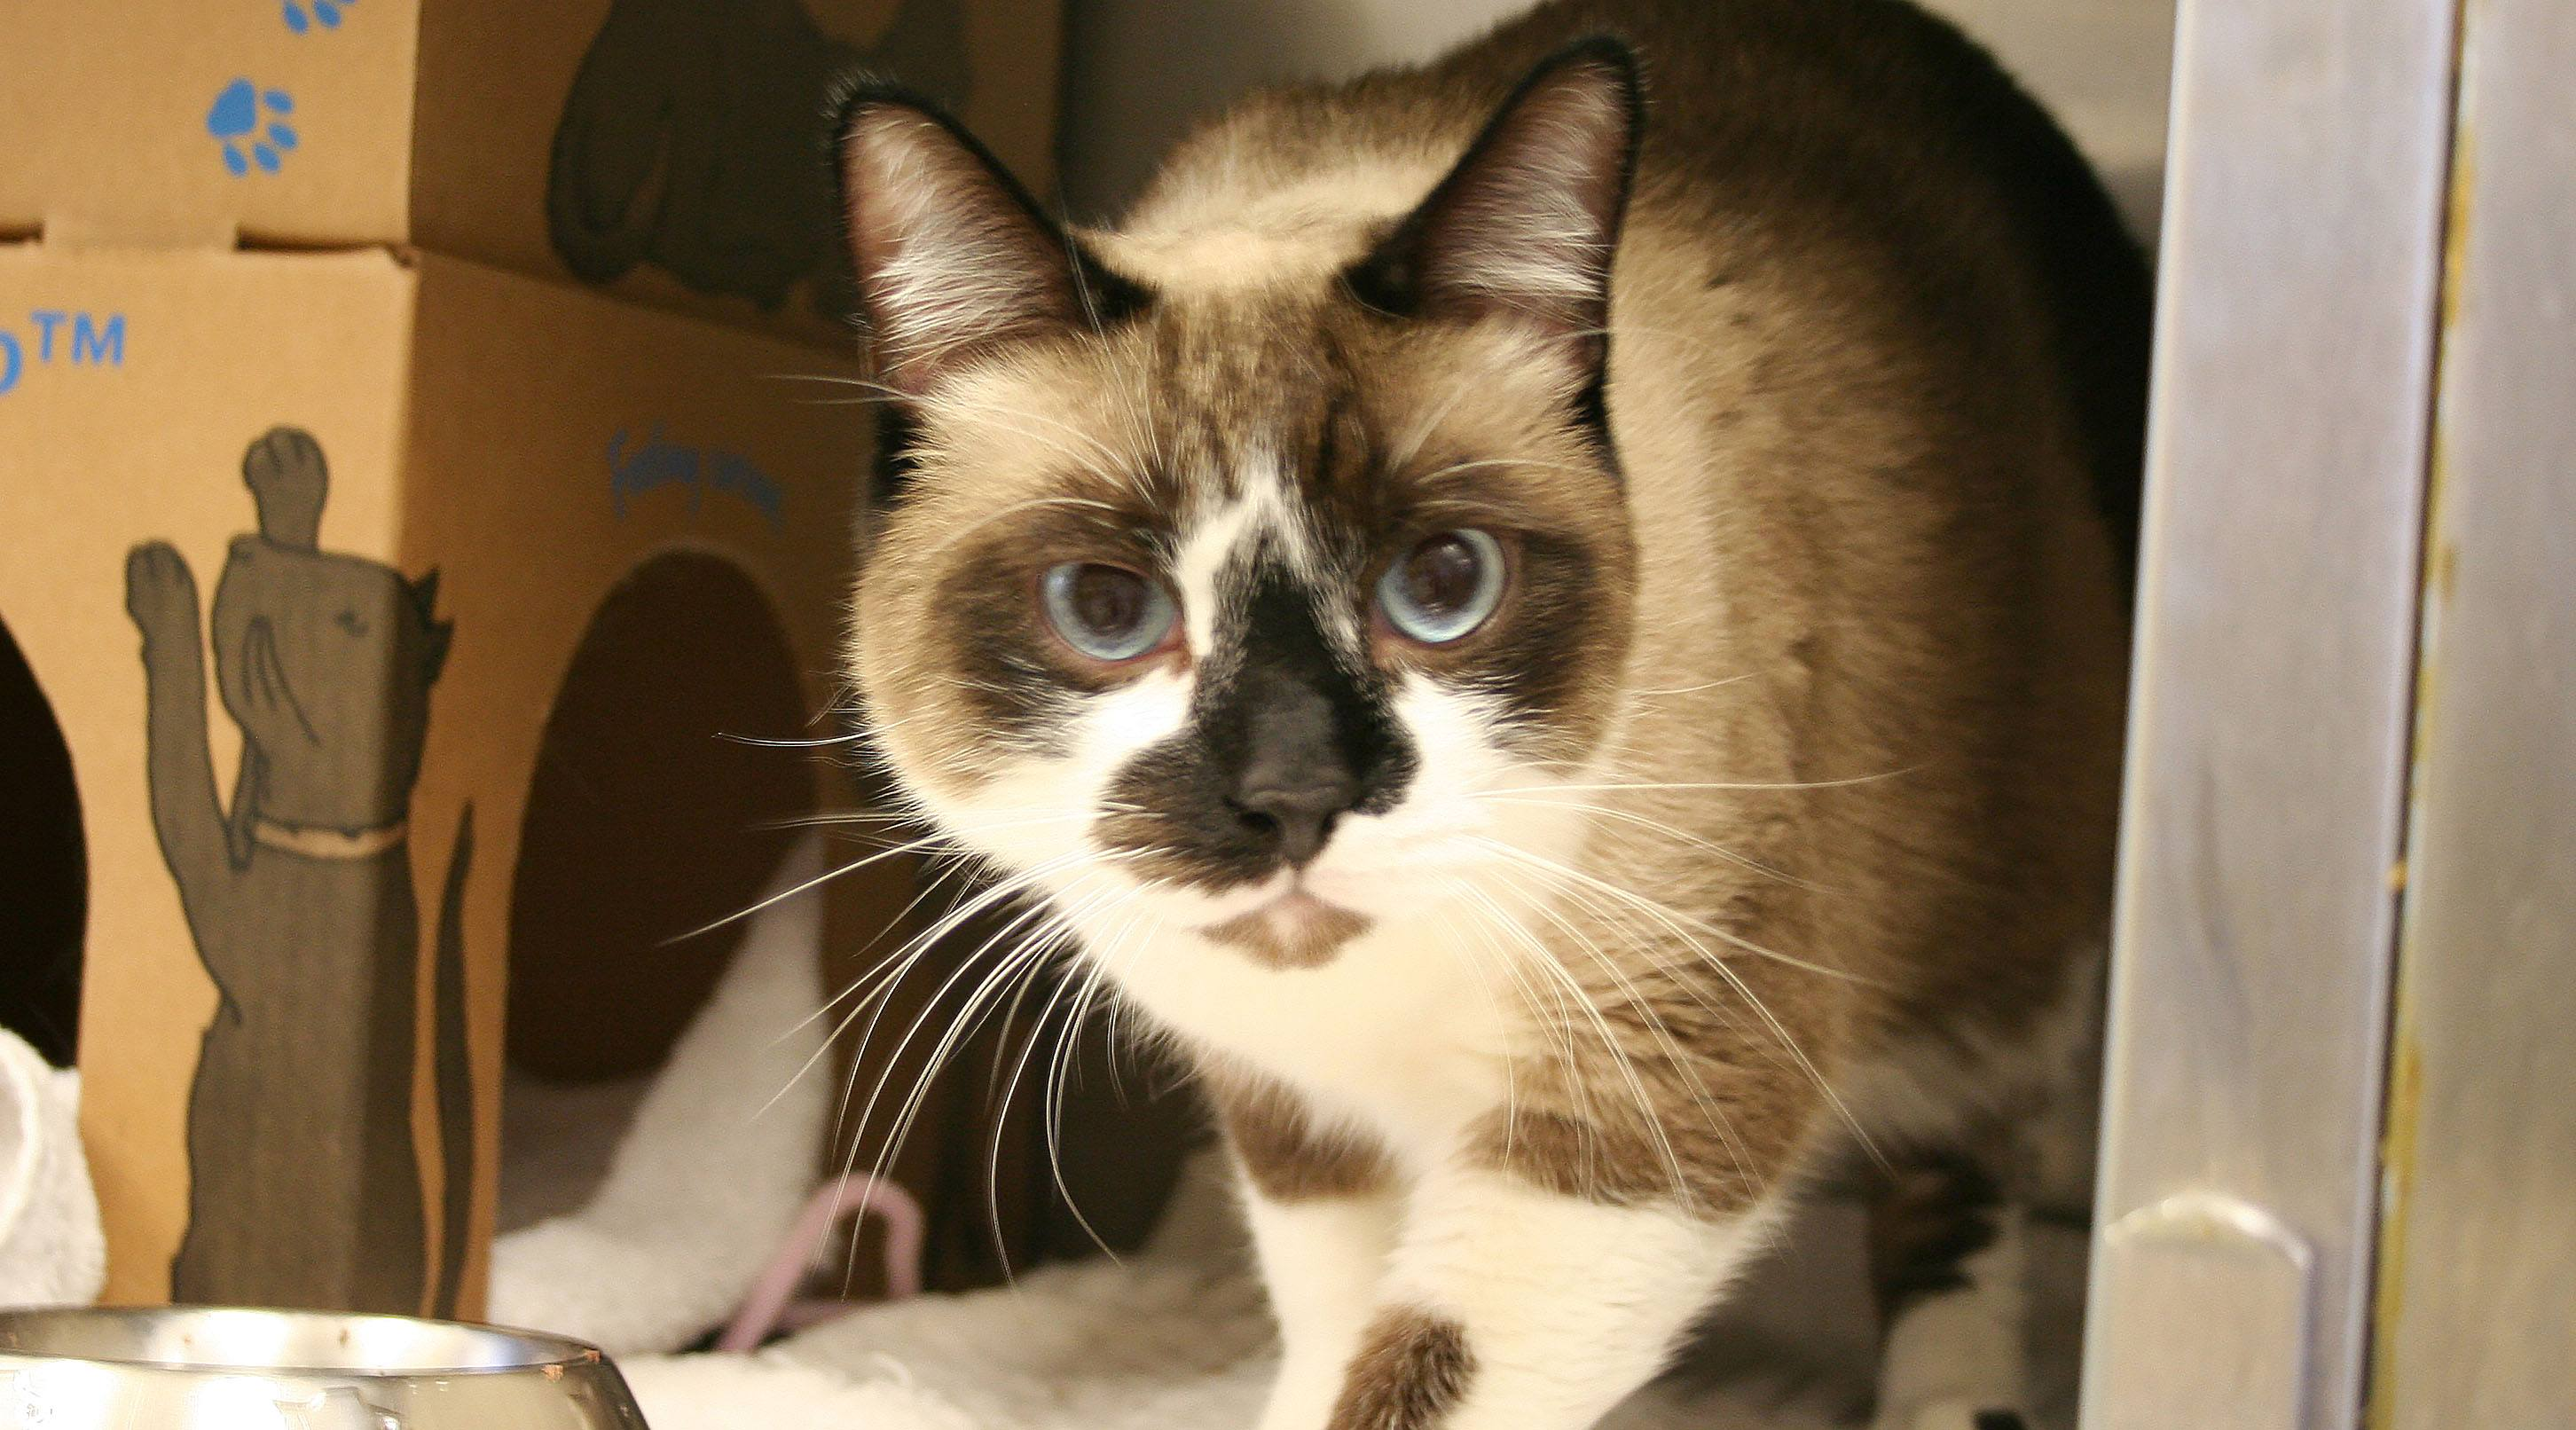 A siamese mix cat seized from sandra simans in langley spca